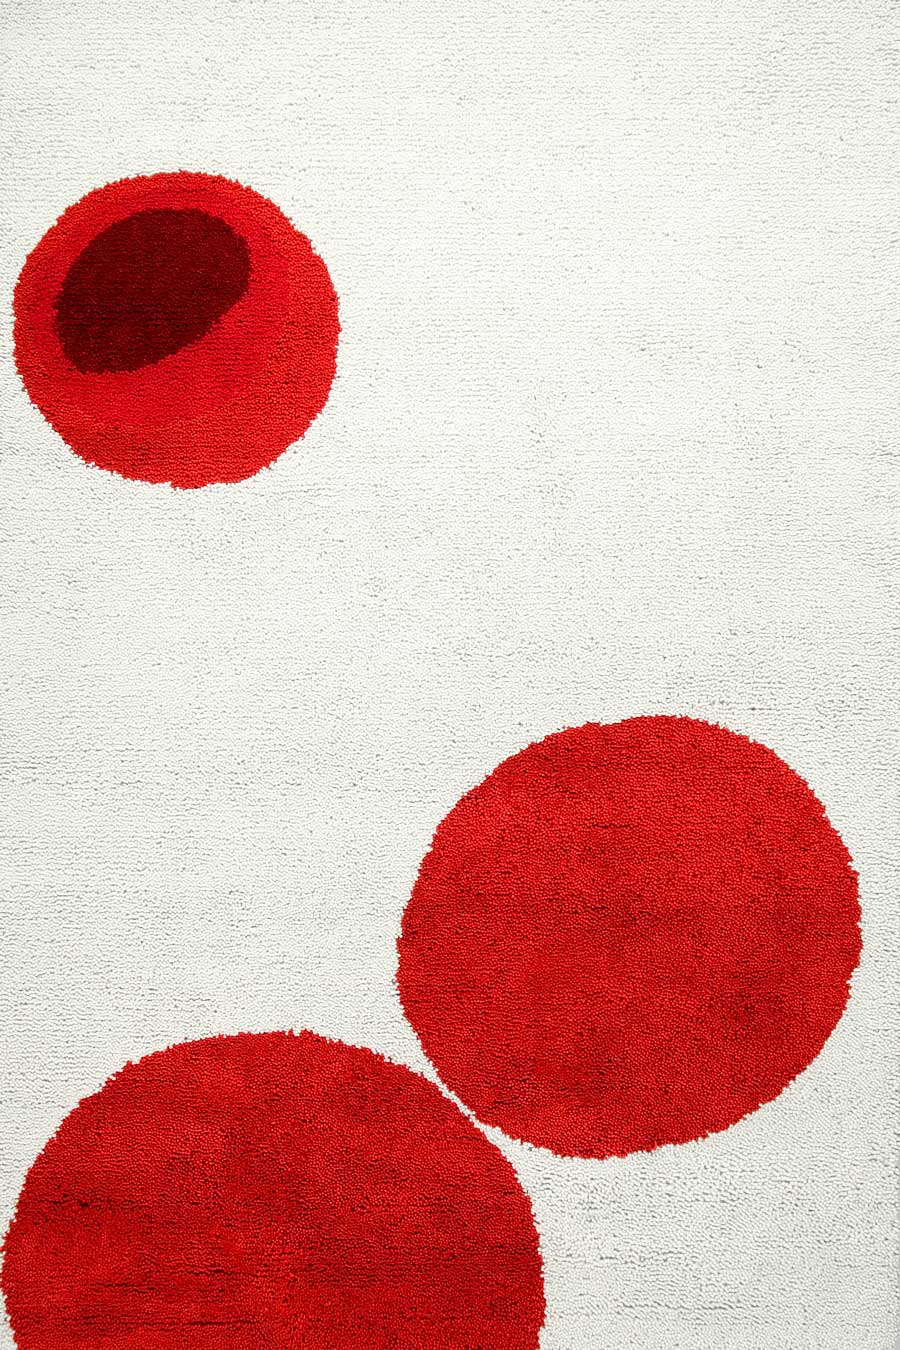 overhead of drops rug by dinosaur designs red dots on white background